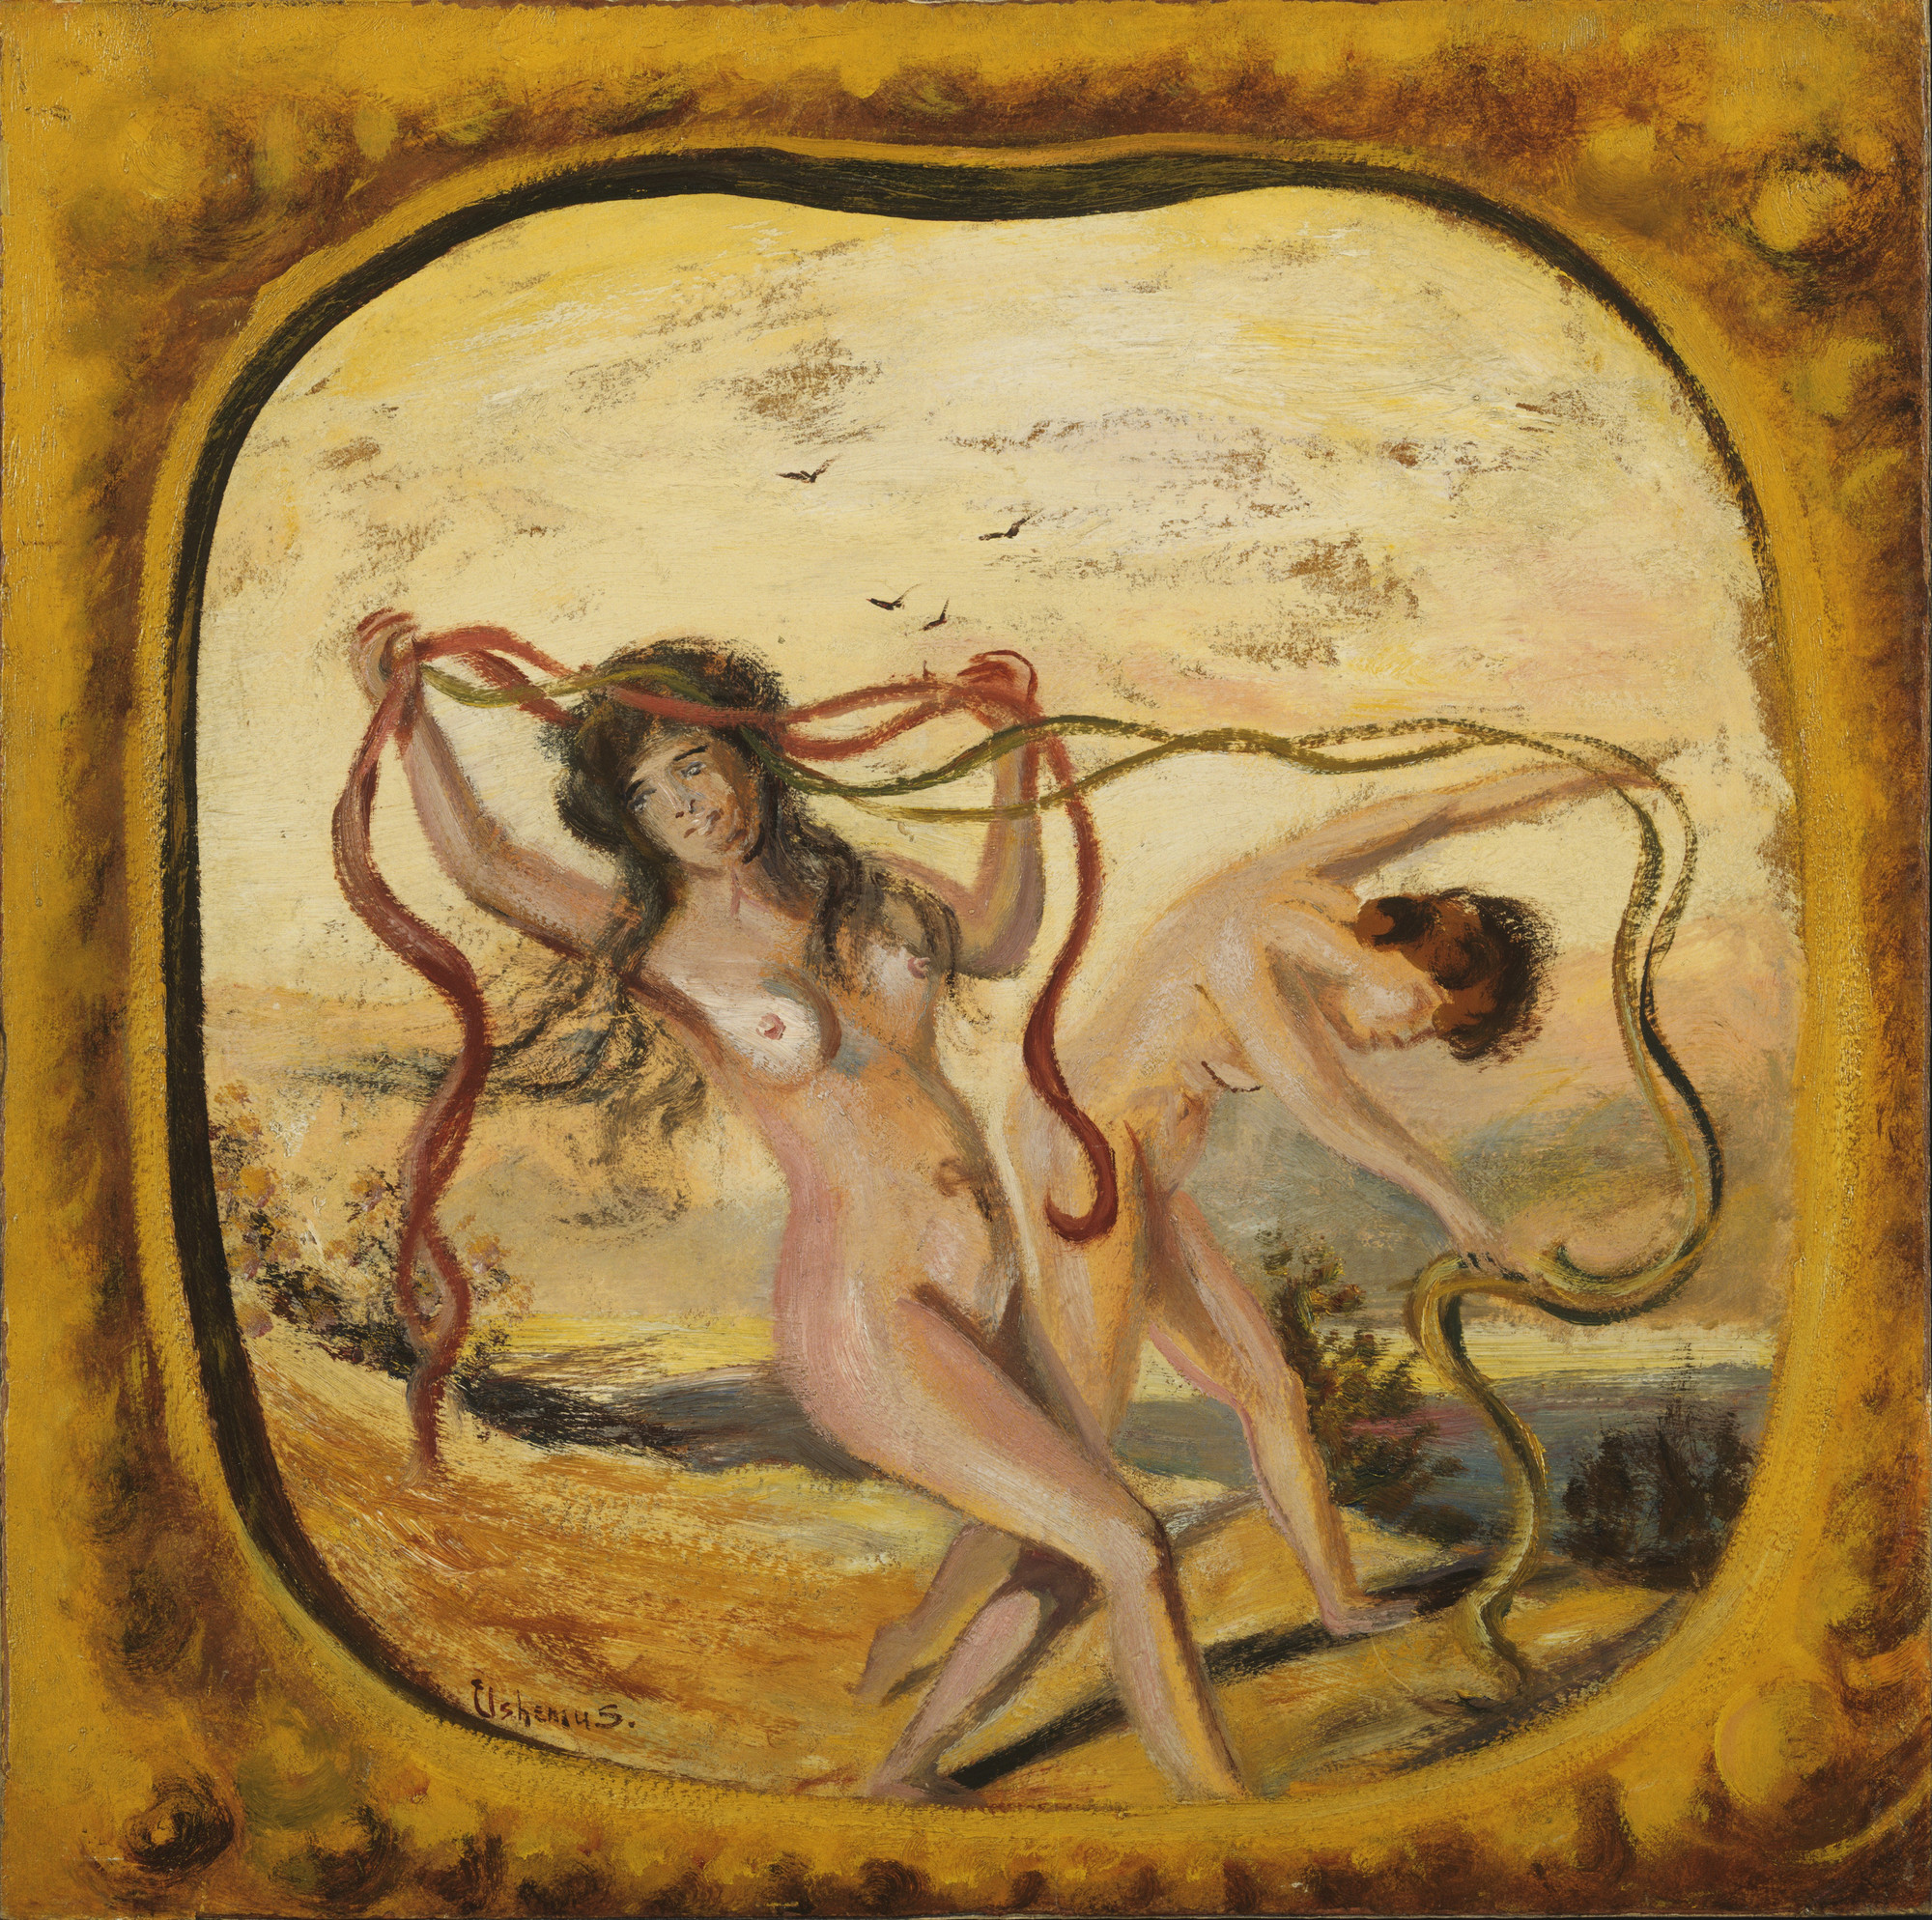 Louis Michel Eilshemius. Dancing Nymphs. 1914